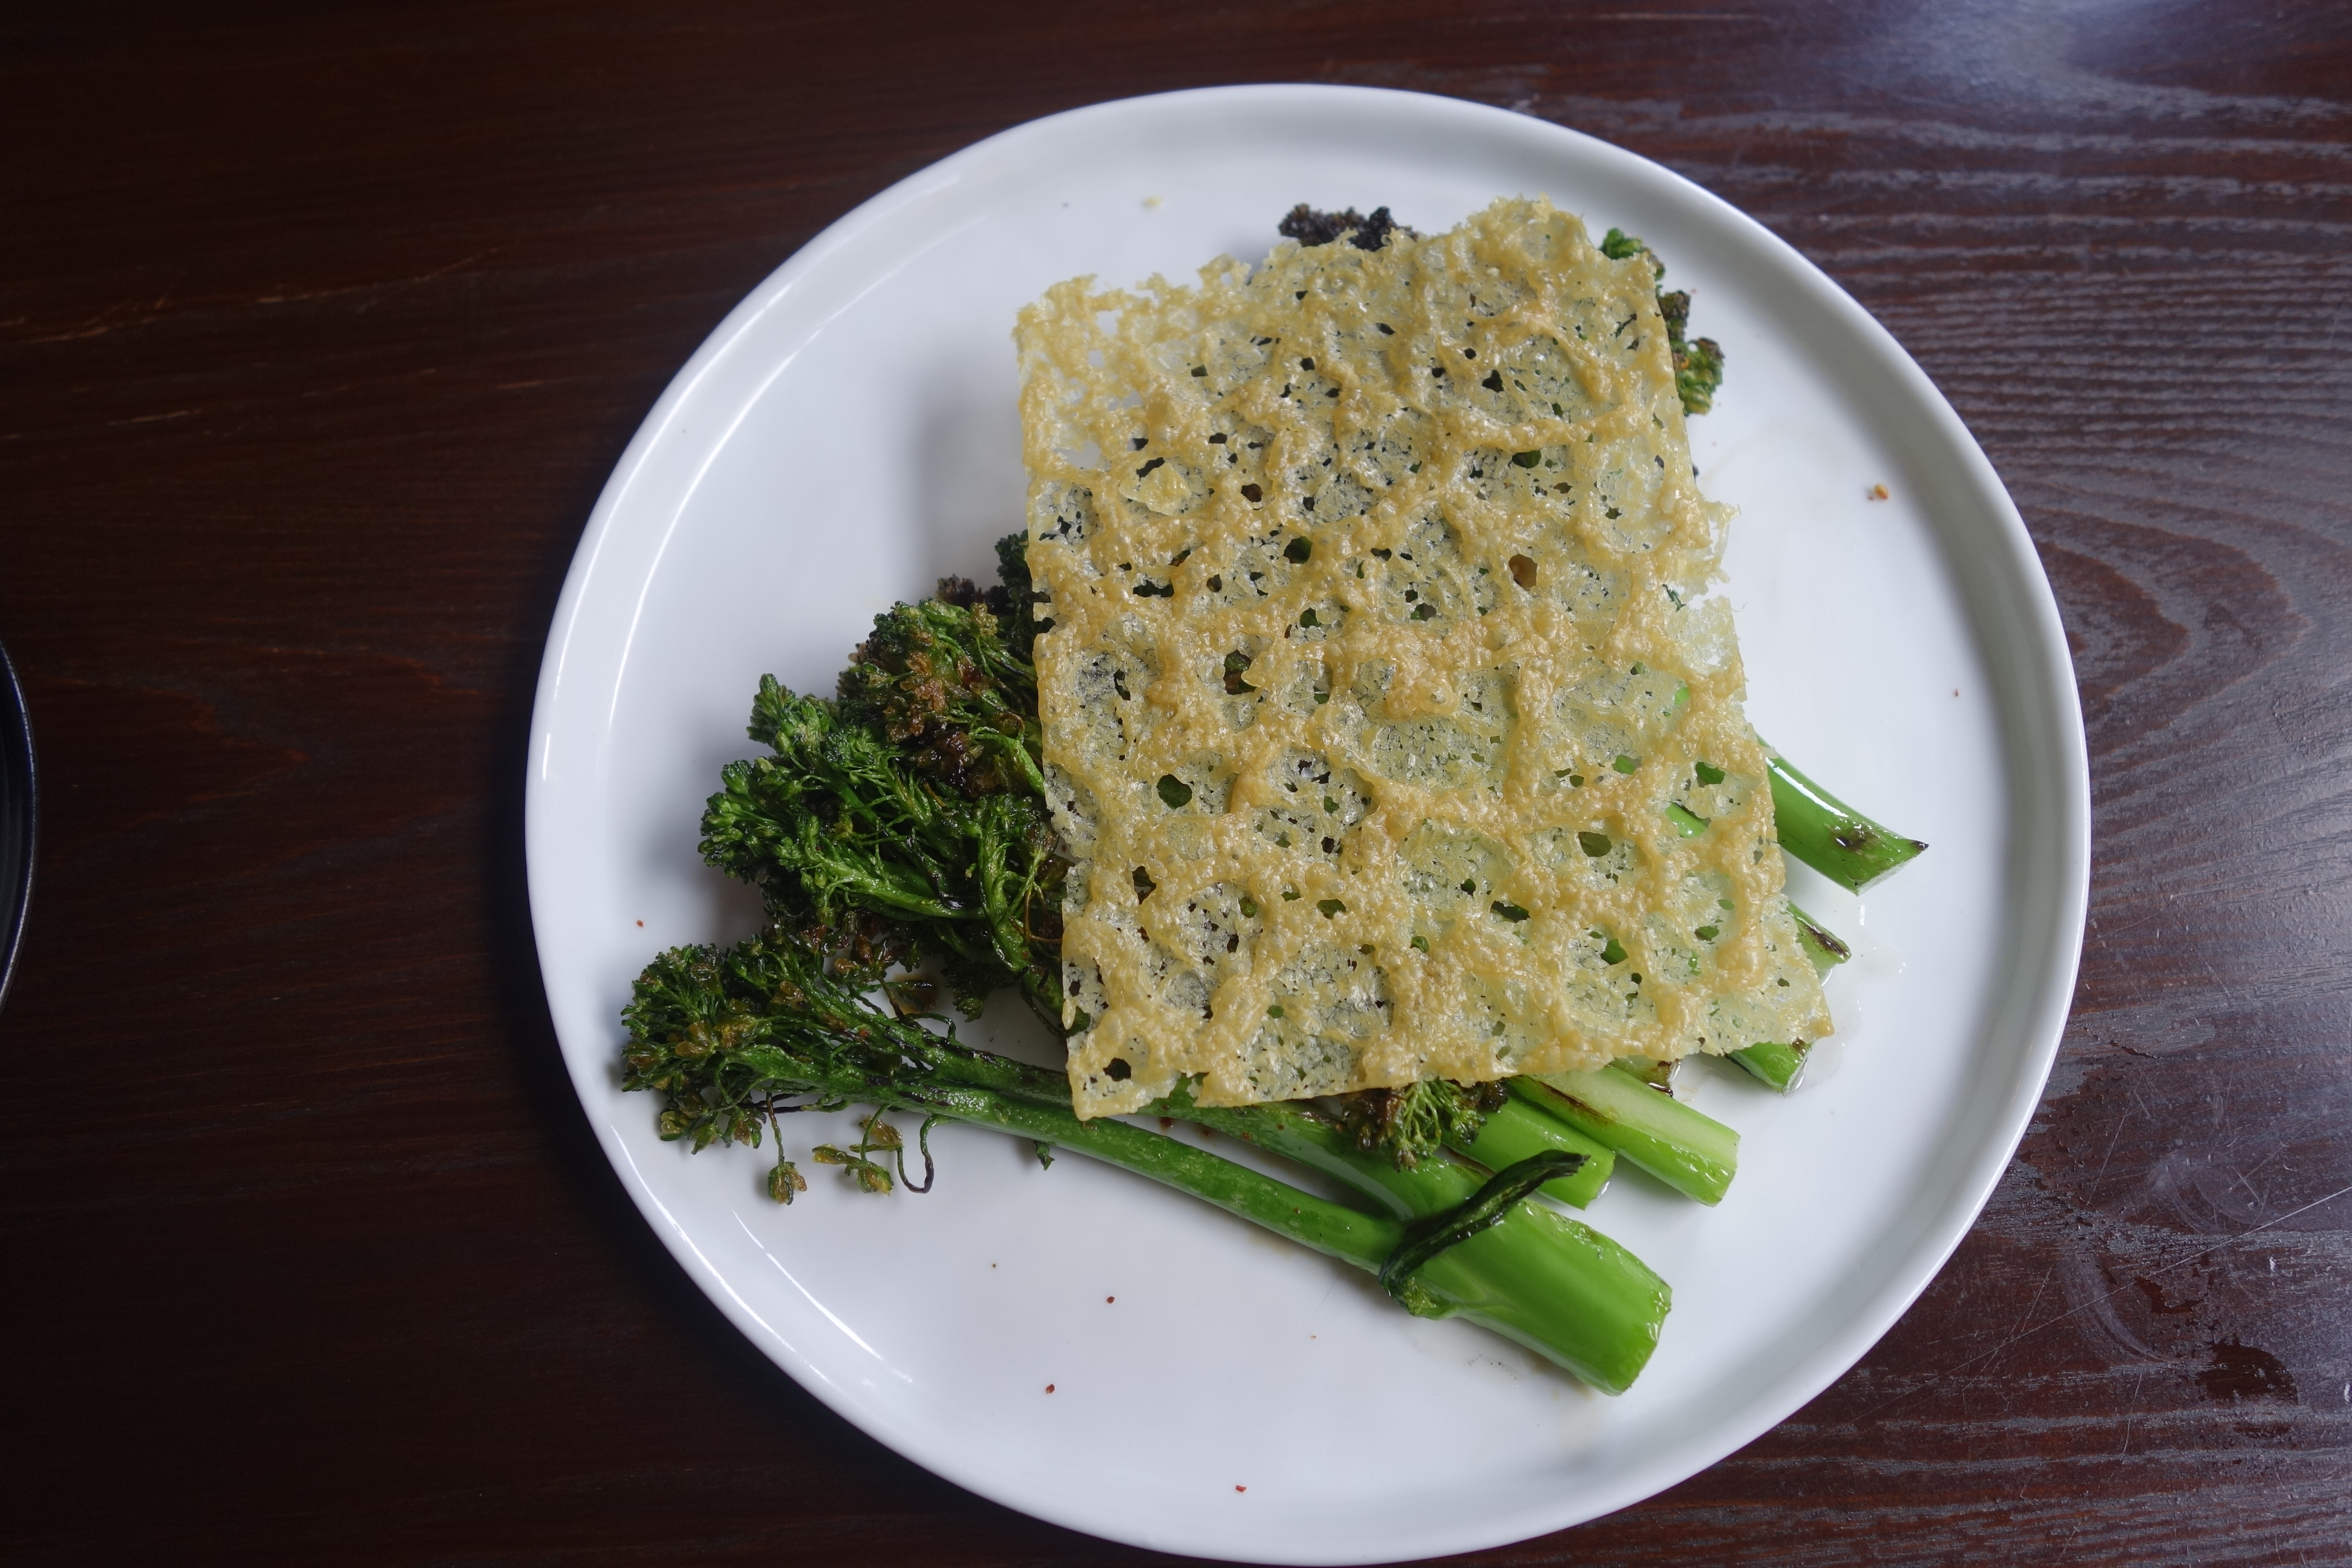 sakamai - charred broccolini